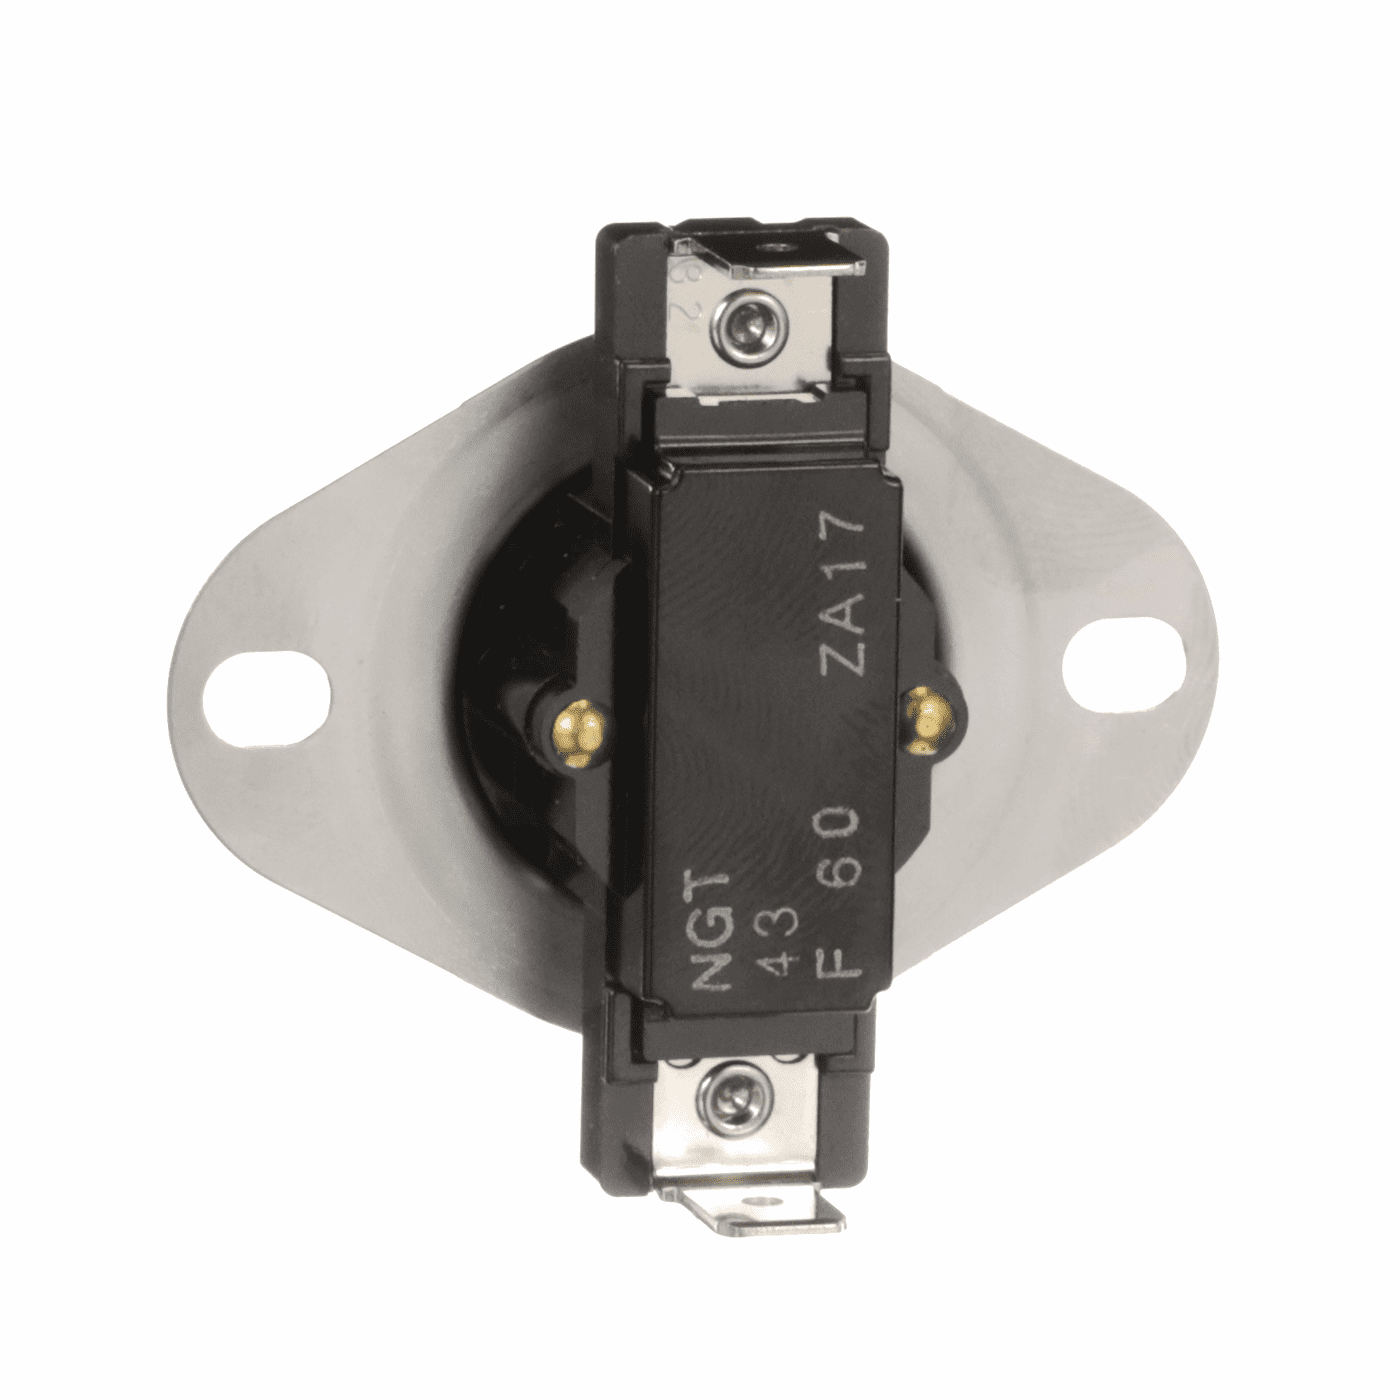 H5875-AMP | Winslow Country Convection Blower Switch, H5875-AMP